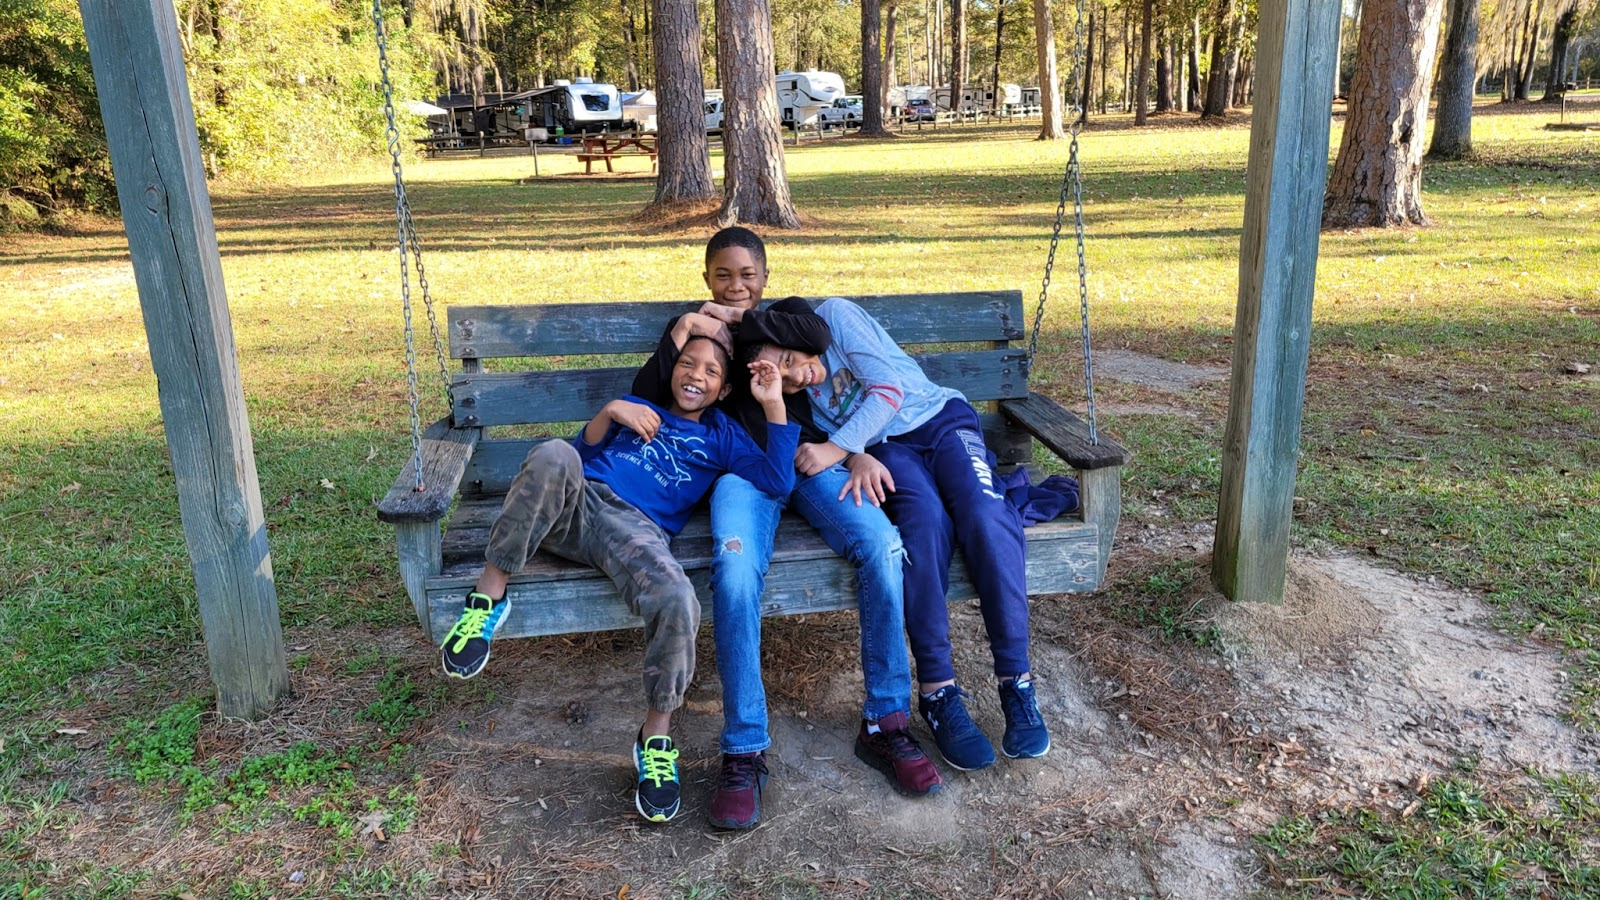 Three brothers sit together on a bench swing